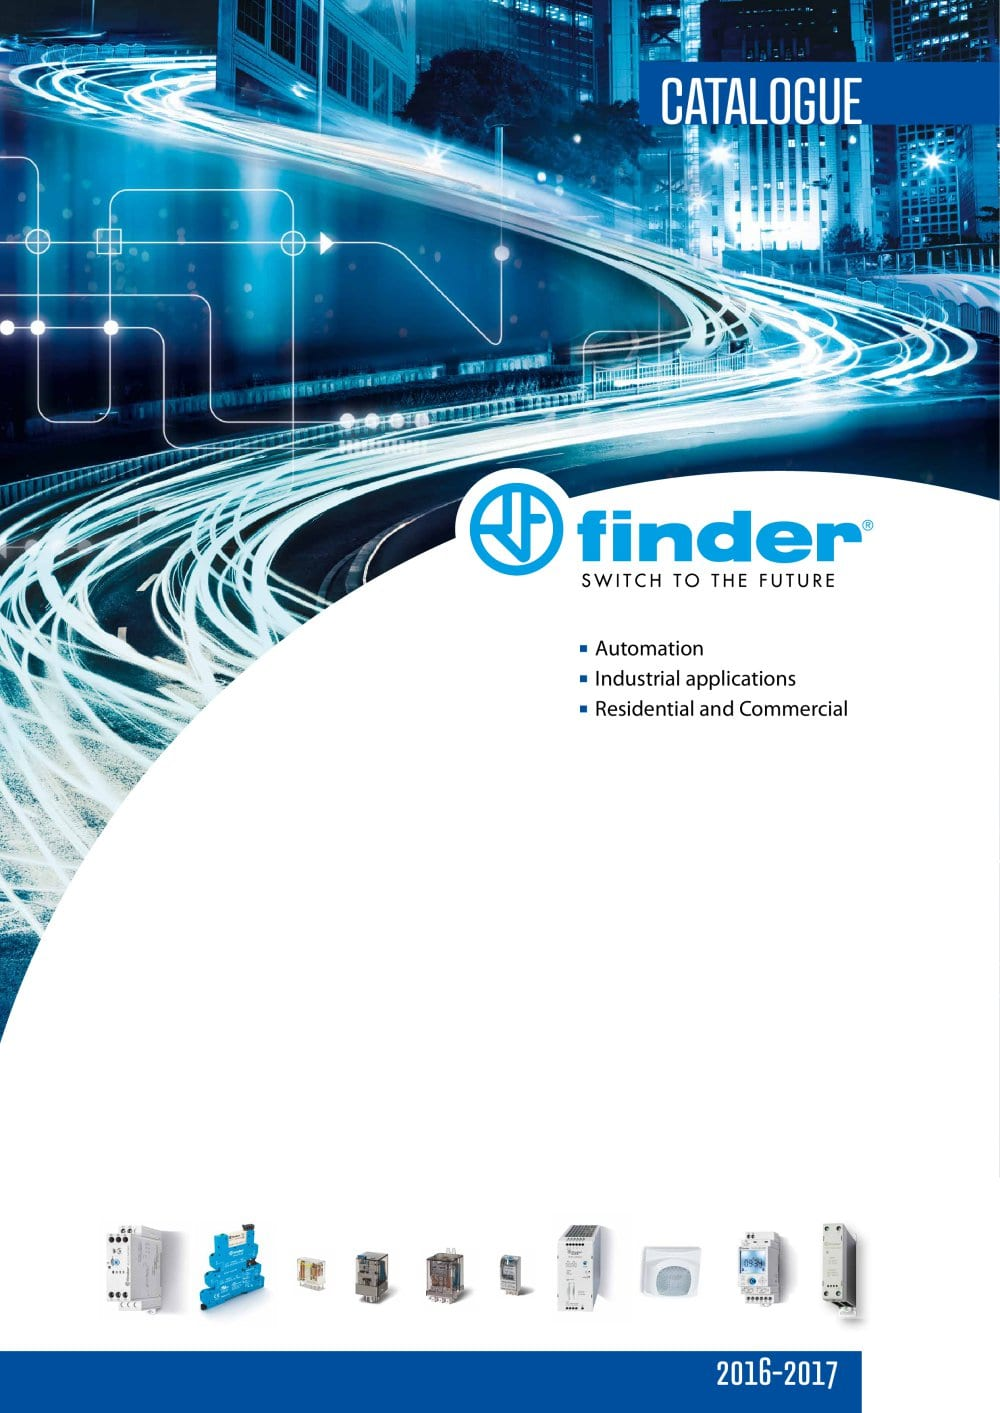 General Catalog Finder Spa Con Unico Socio Pdf Catalogue Solid State Relay 1 587 Pages